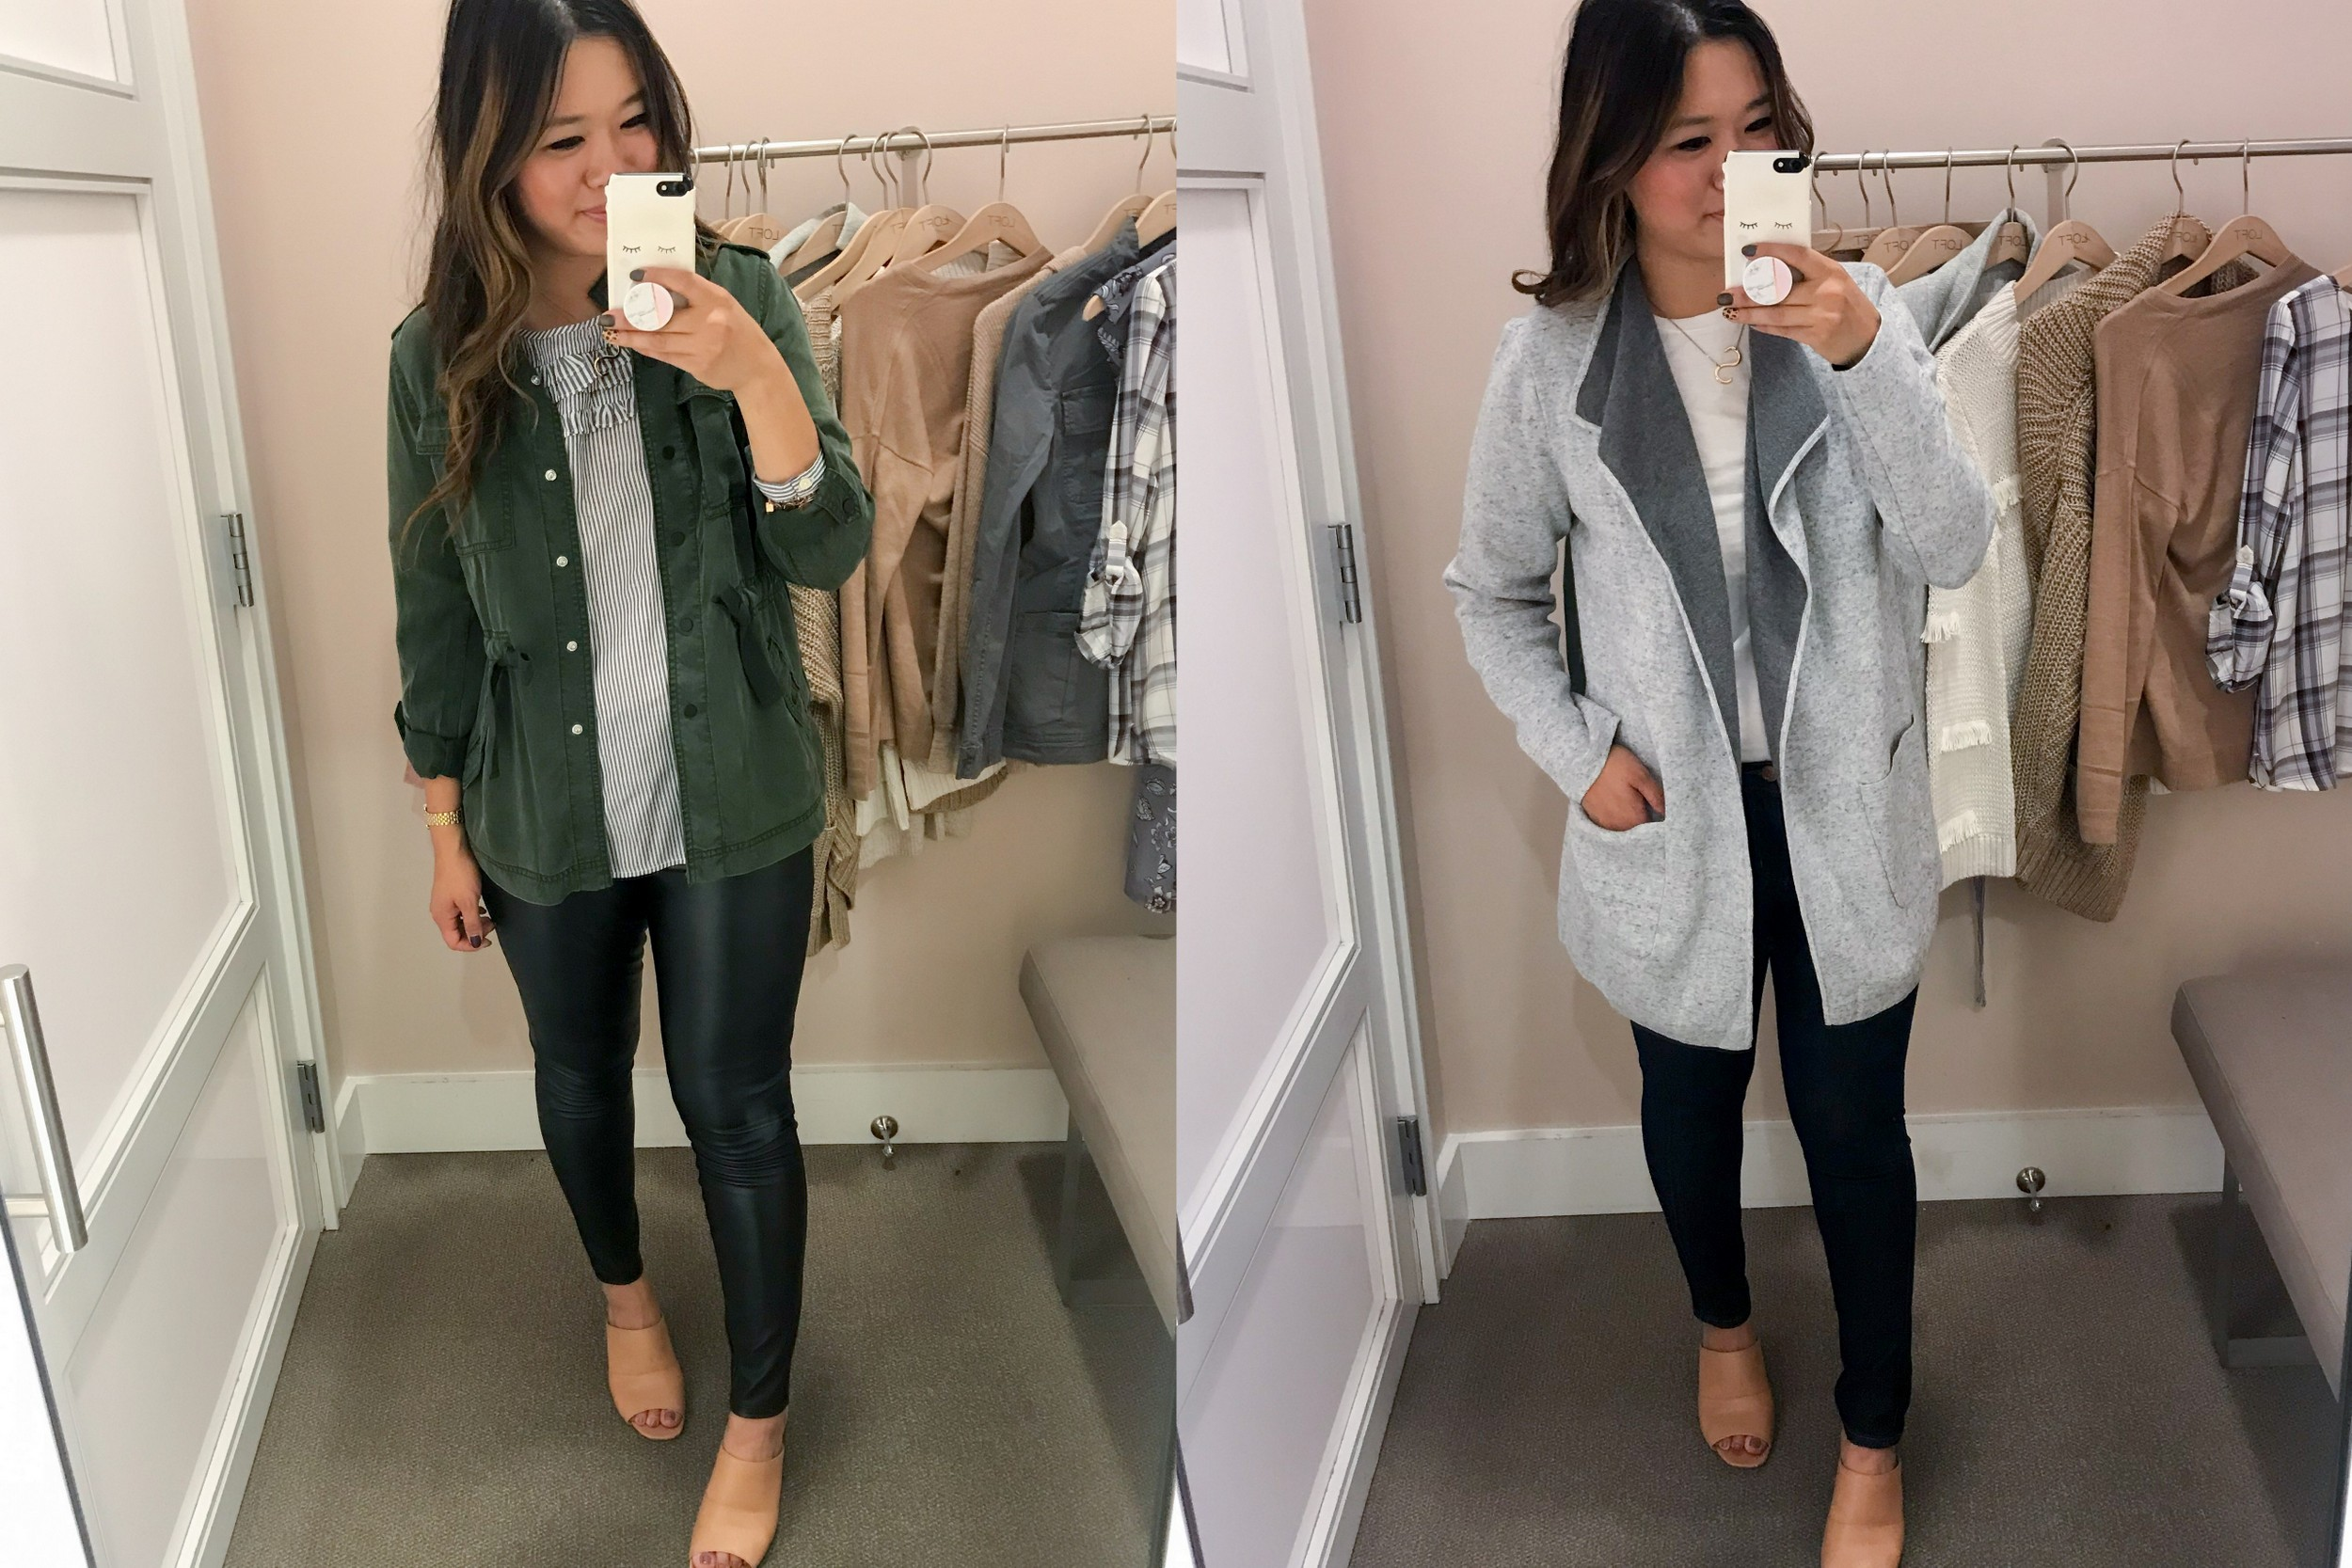 f2935a3f3b8 LOFT Fall Styled Outfits + Dressing Room Try Ons | Sandy a la Mode